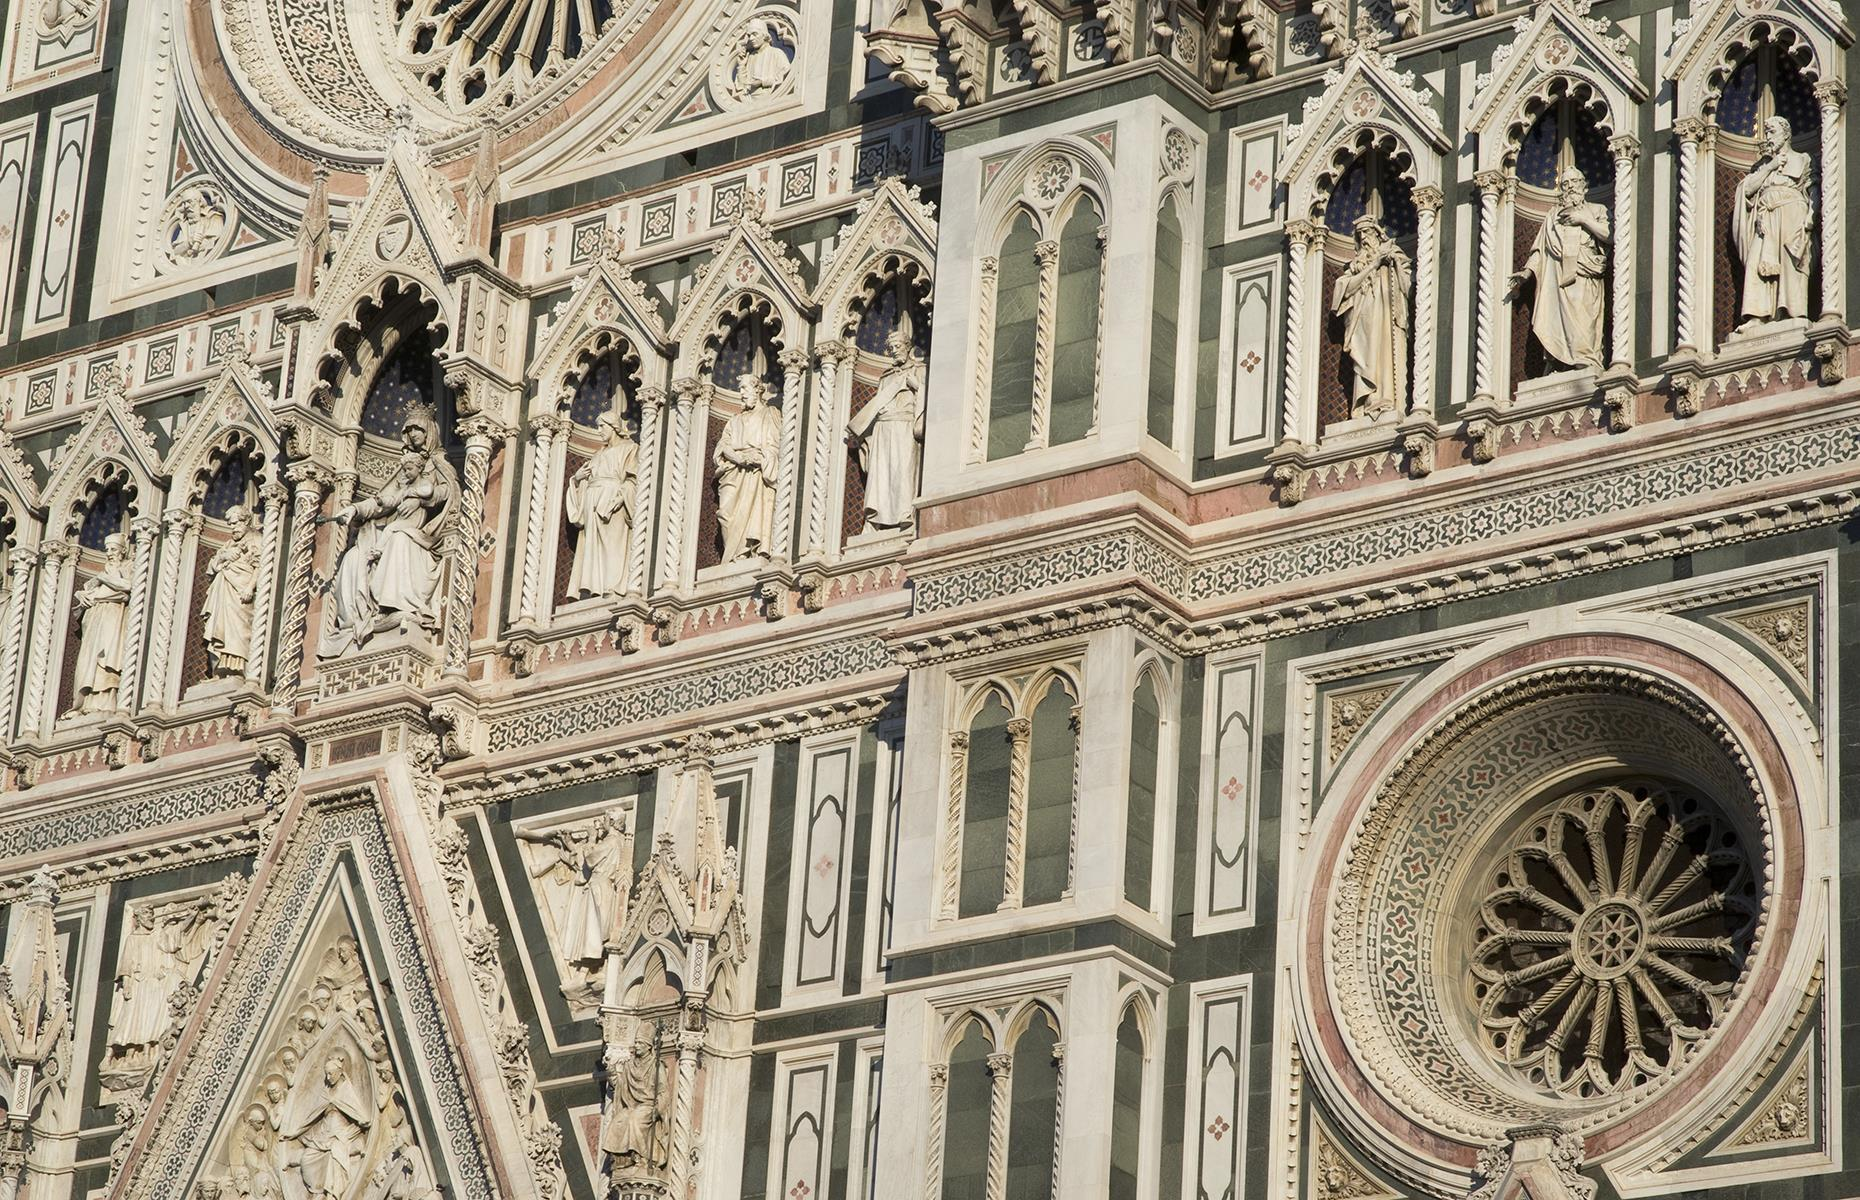 Slide 40 of 53: One of the planet's most famous cathedrals, this Florence icon has the largest masonry dome in the world. It is also among the biggest cathedrals in the world.